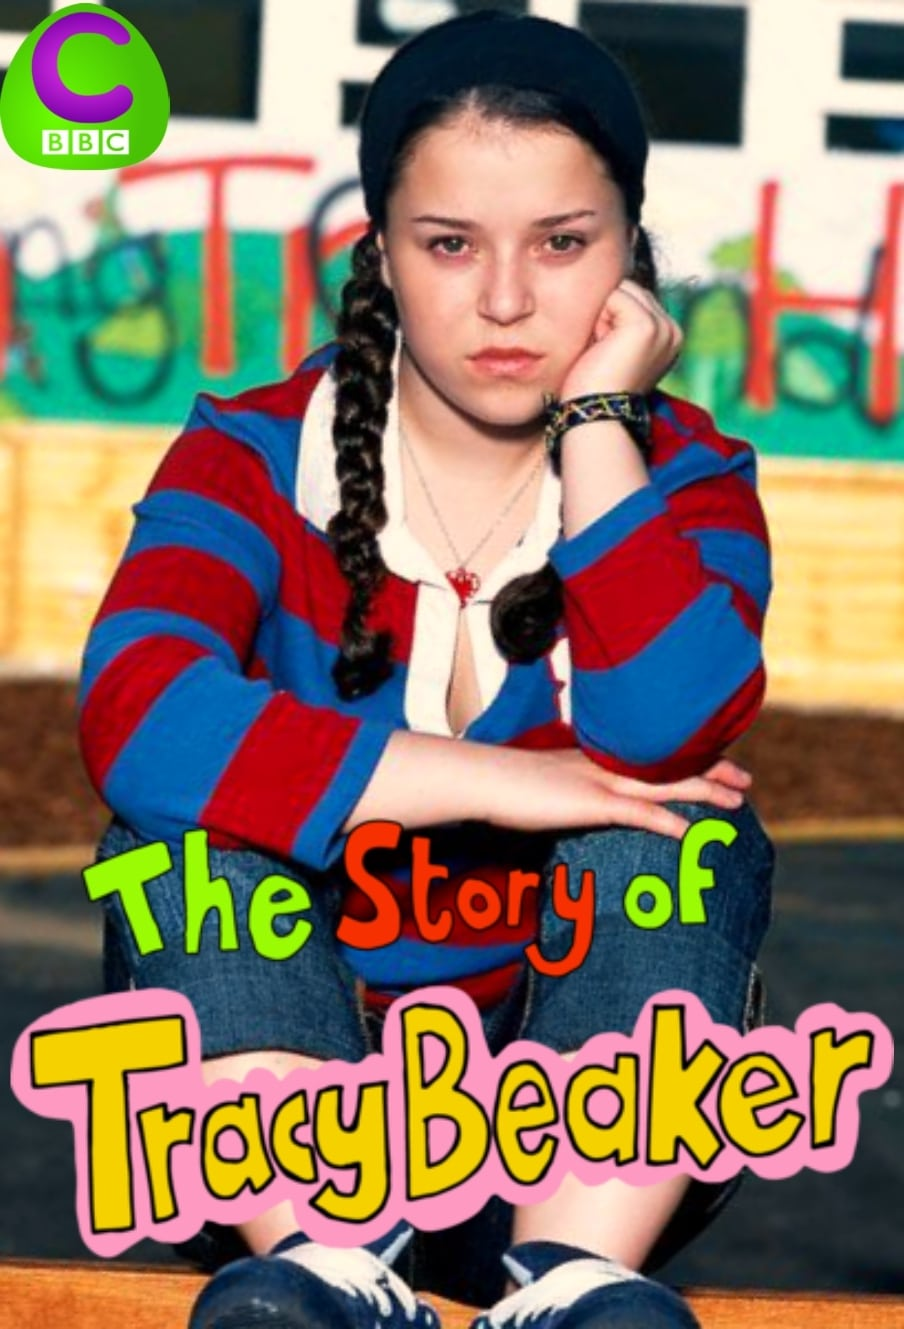 The Story of Tracy Beaker (2002)